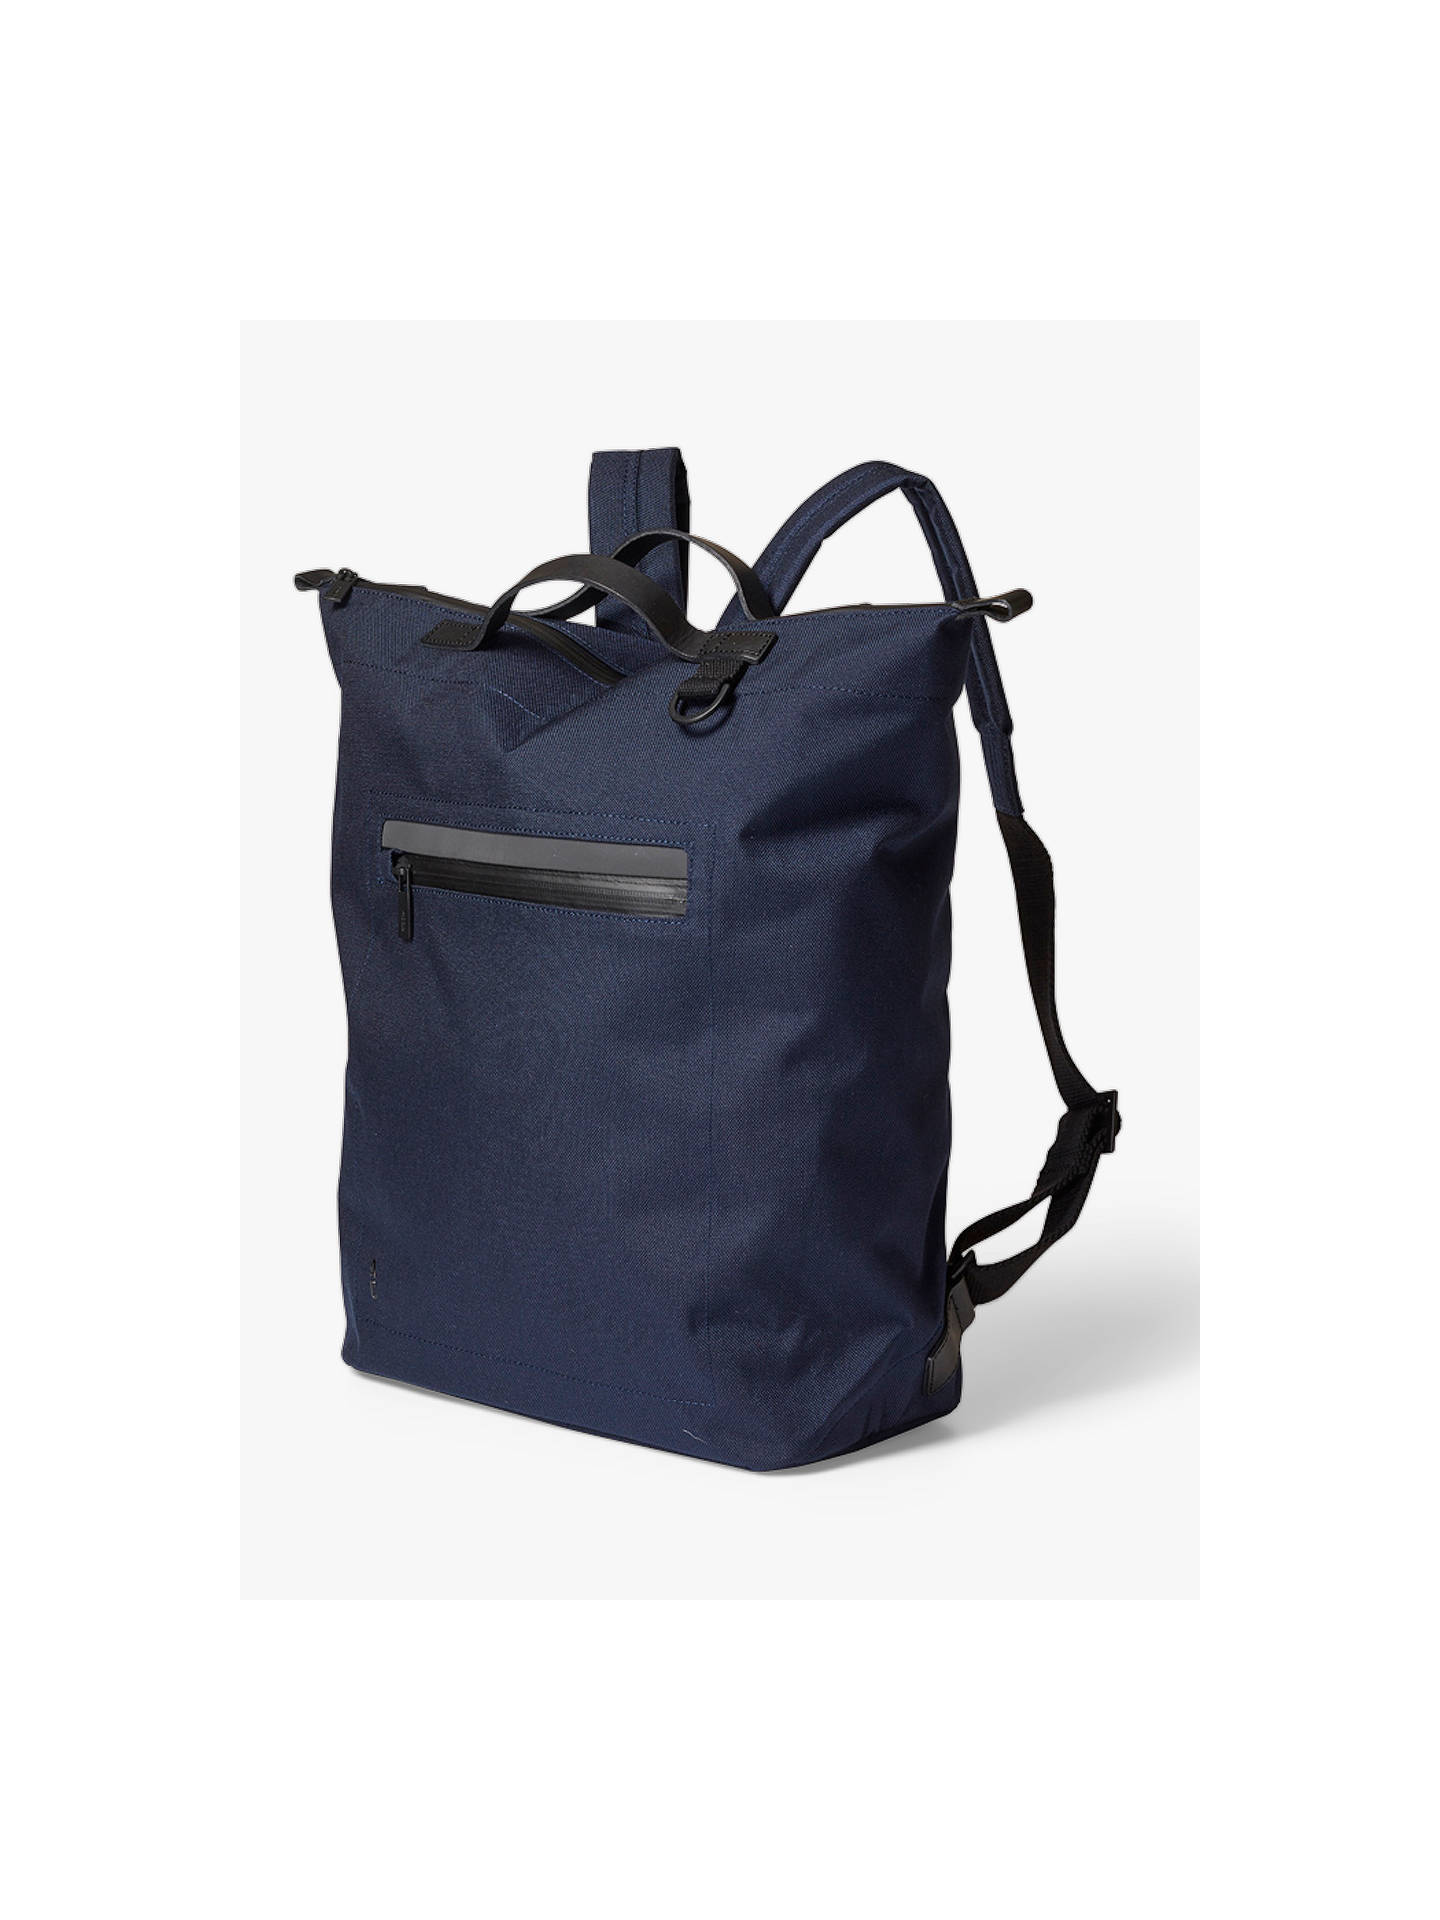 Buy Ally Capellino Hoy Travel Cycle Backpack, Navy Online at johnlewis.com